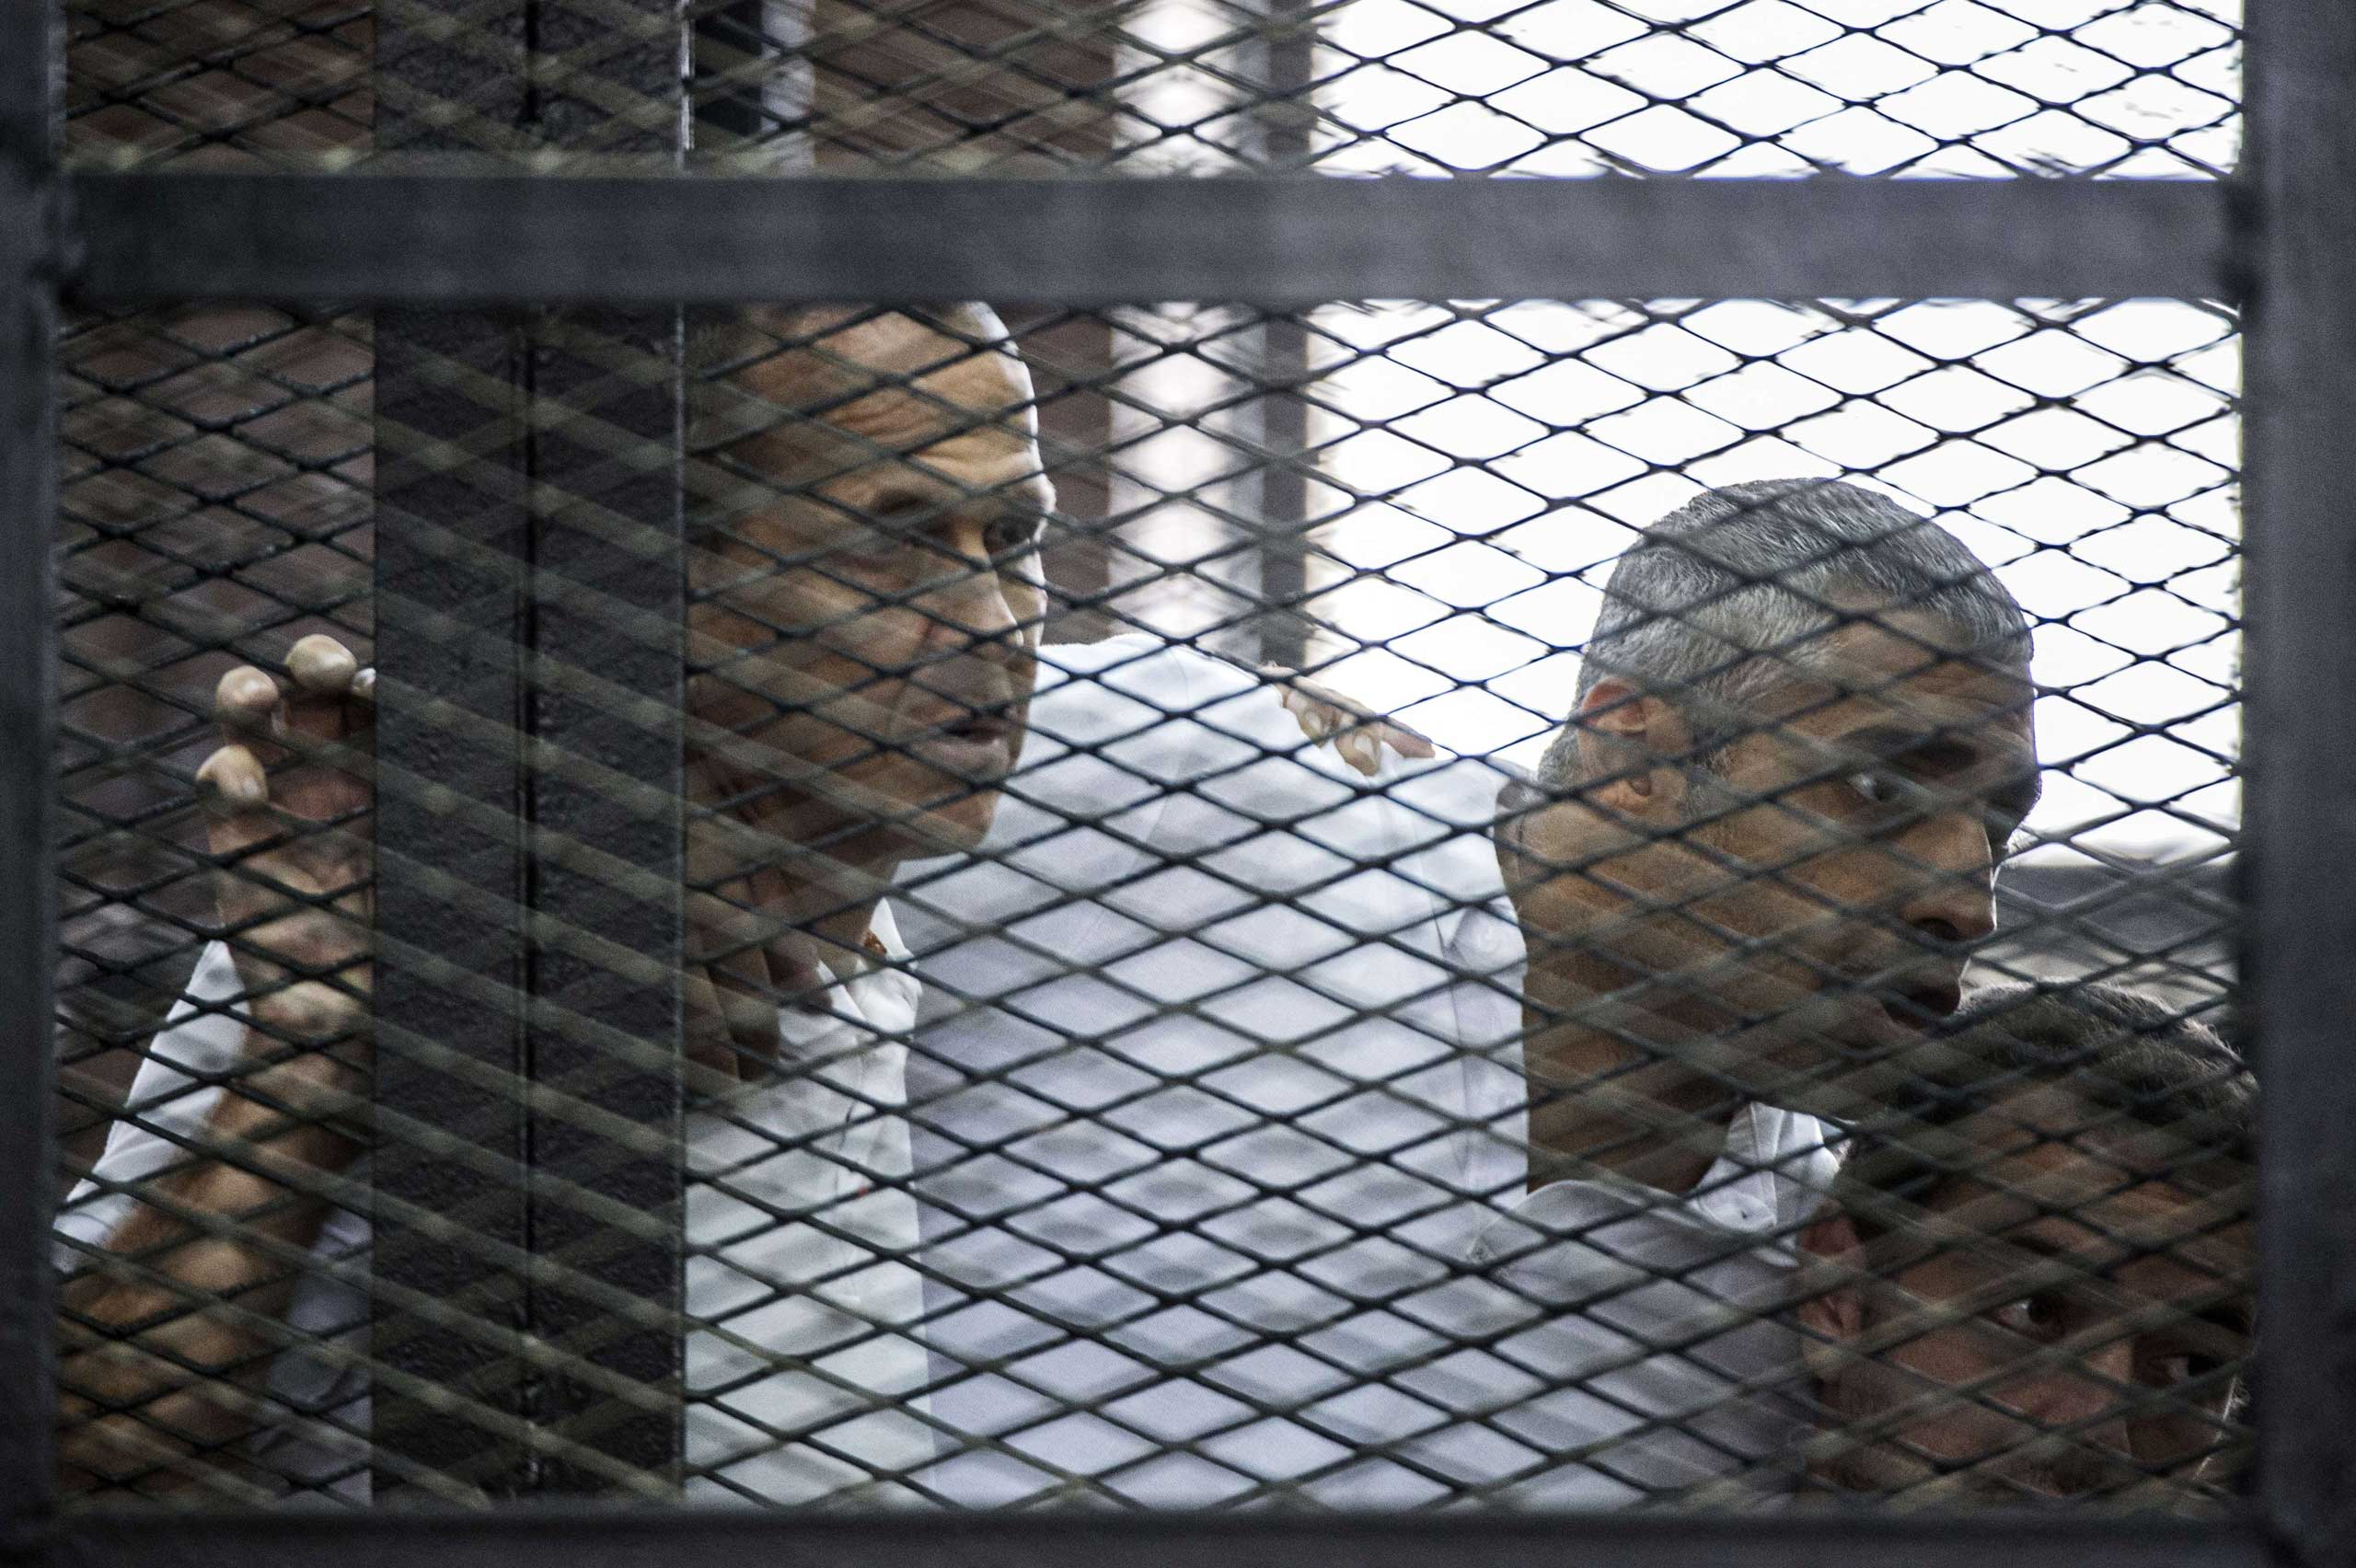 Al-Jazeera news channel's Australian journalist Peter Greste (L) and his colleagues, Egyptian-Canadian Mohamed Fadel Fahmy (C) and Egyptian Baher Mohamed, listen to the verdict inside the defendants cage during their trial at Tora prison in Cairo on June 23, 2014.